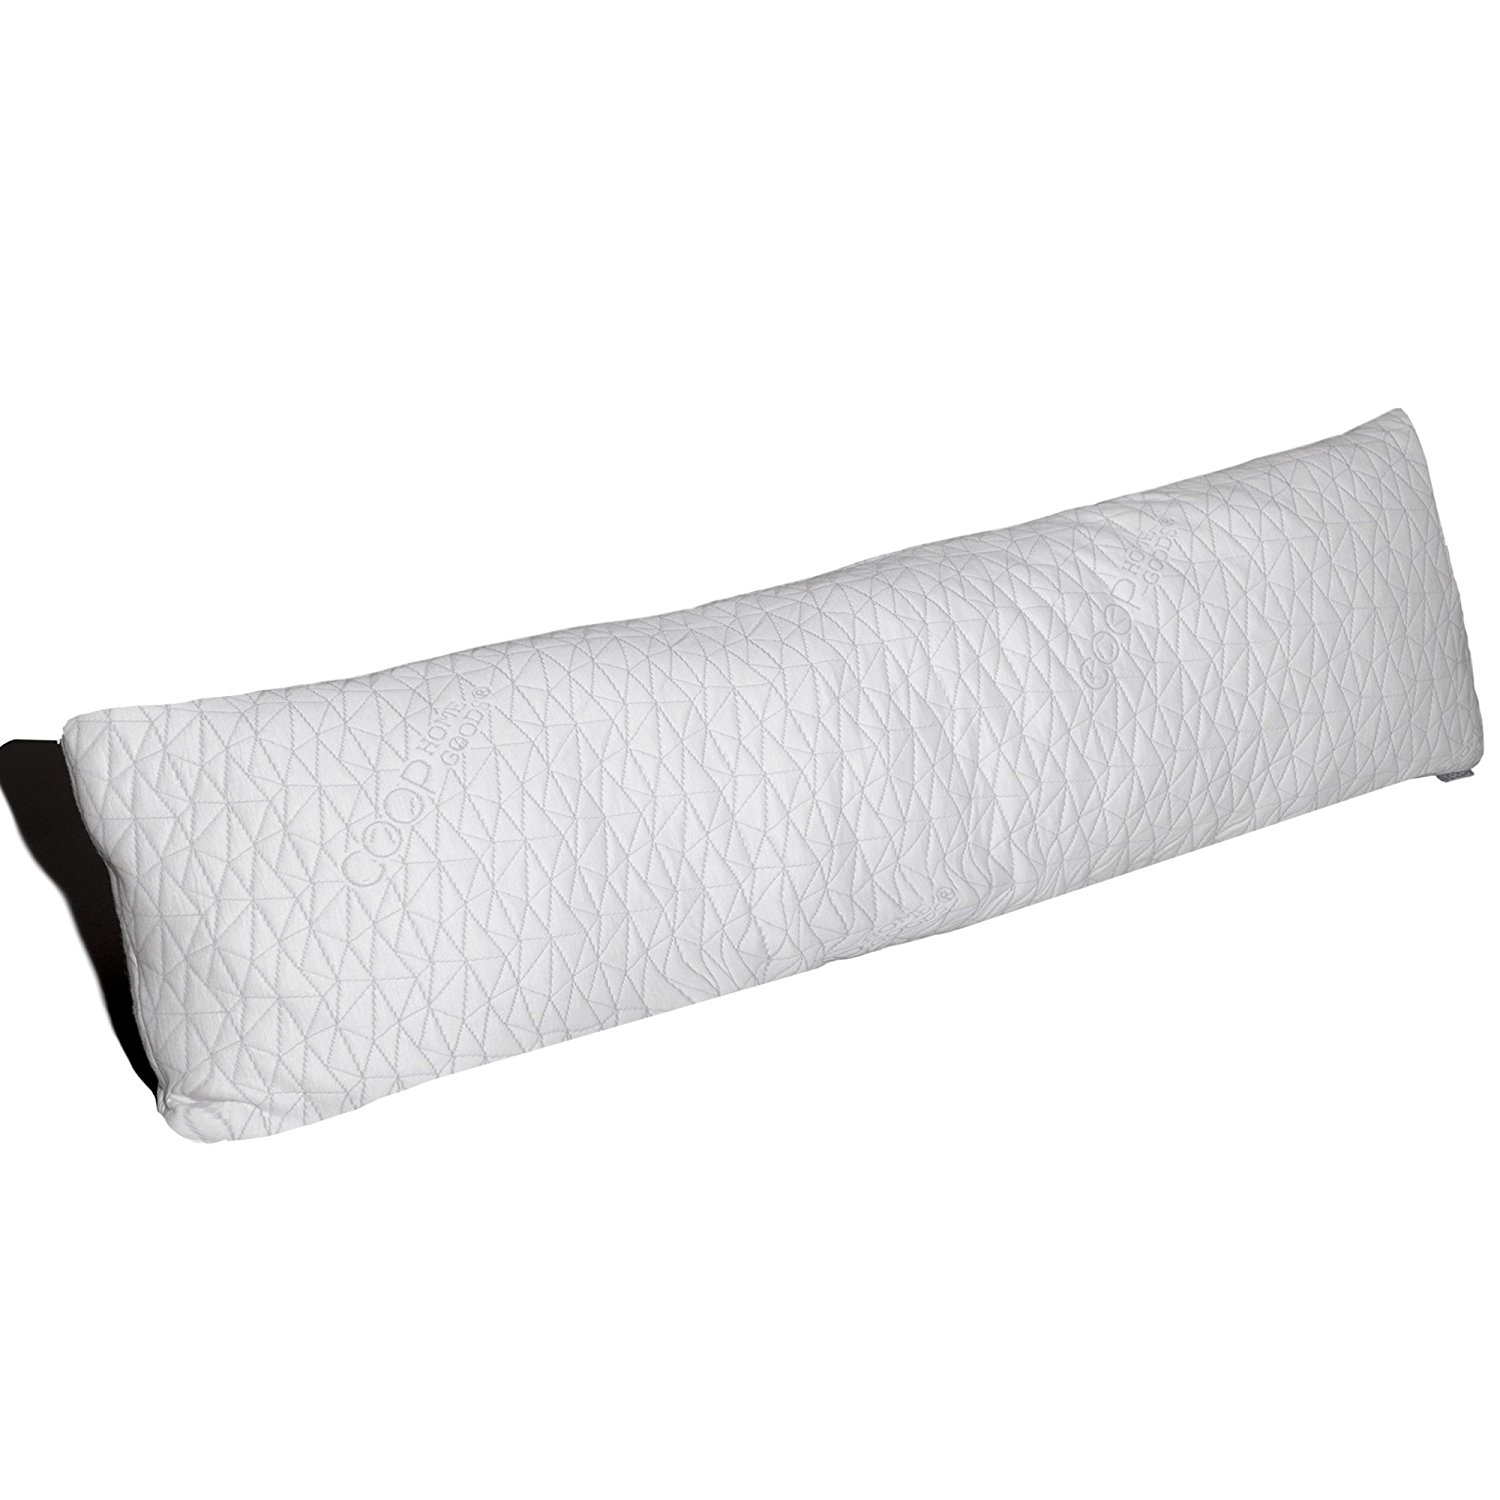 Coop Home Goods - Shredded Memory Foam Body Pillow